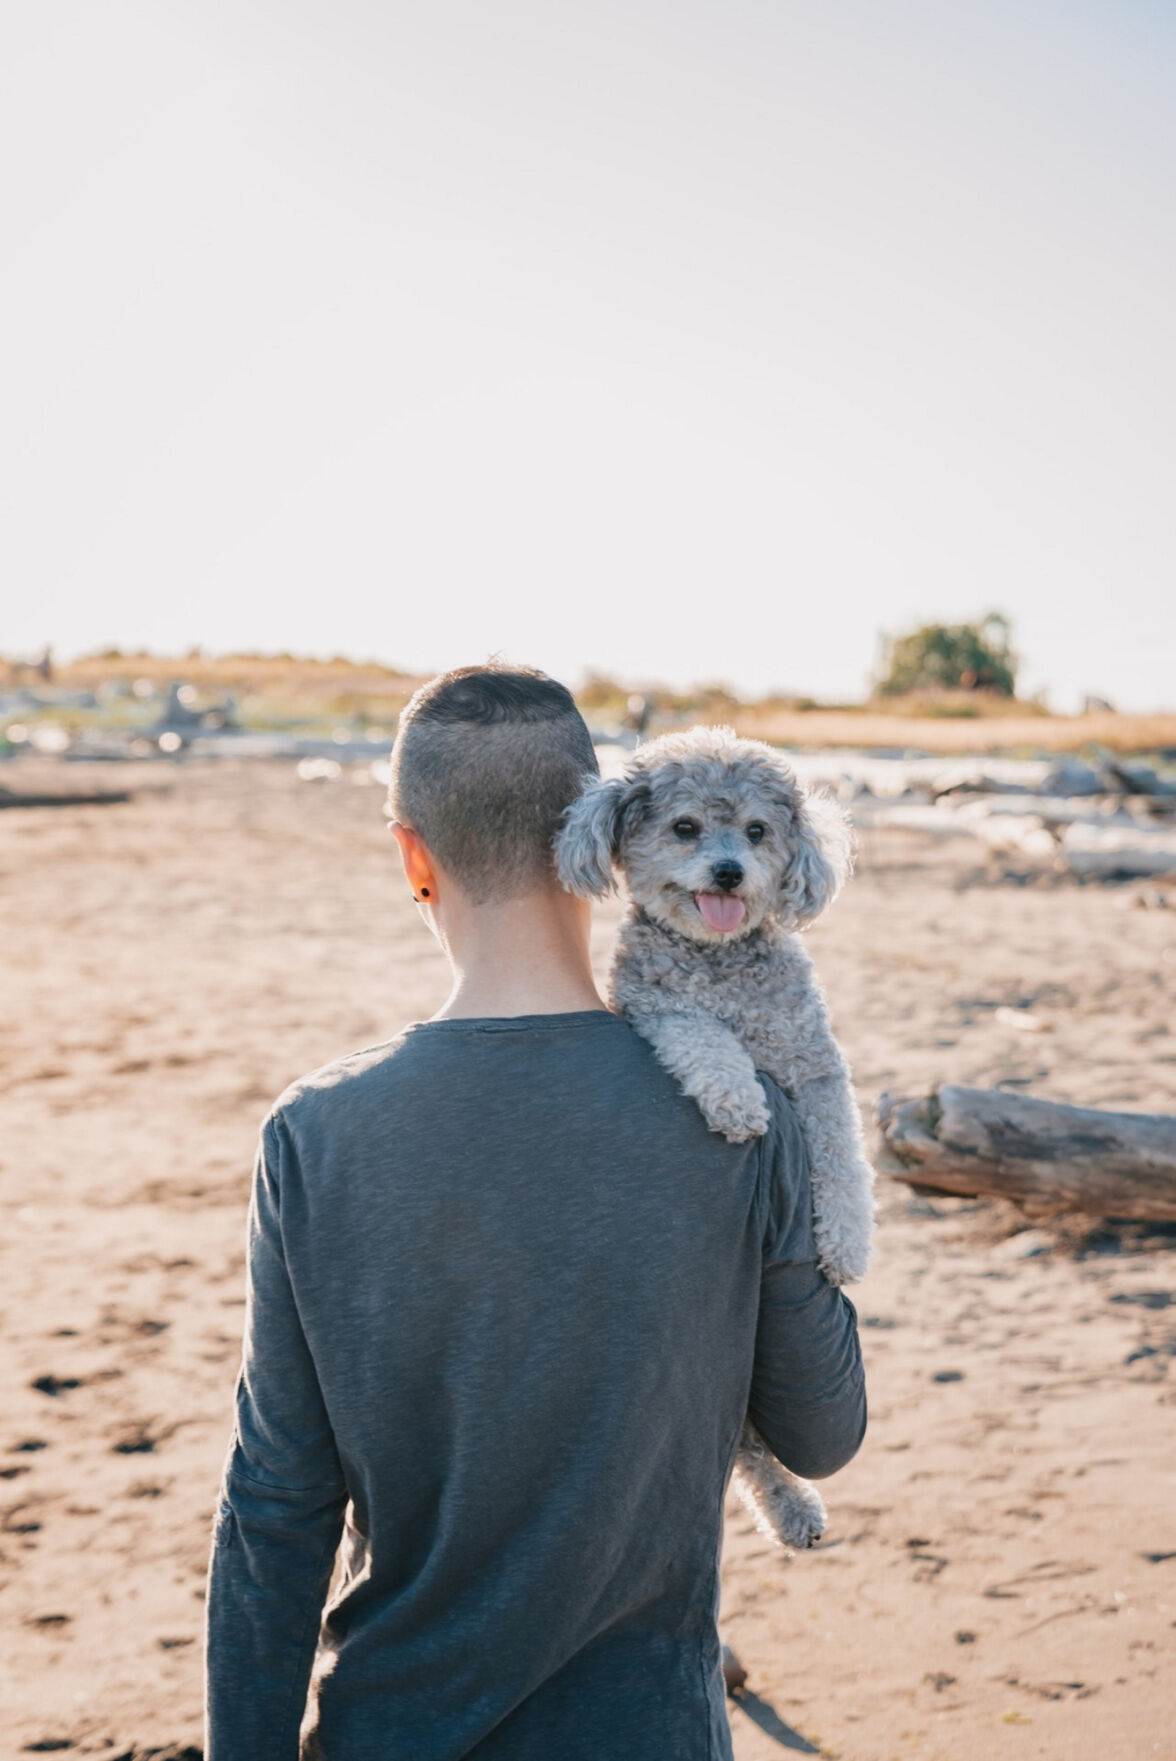 Camping with your canine